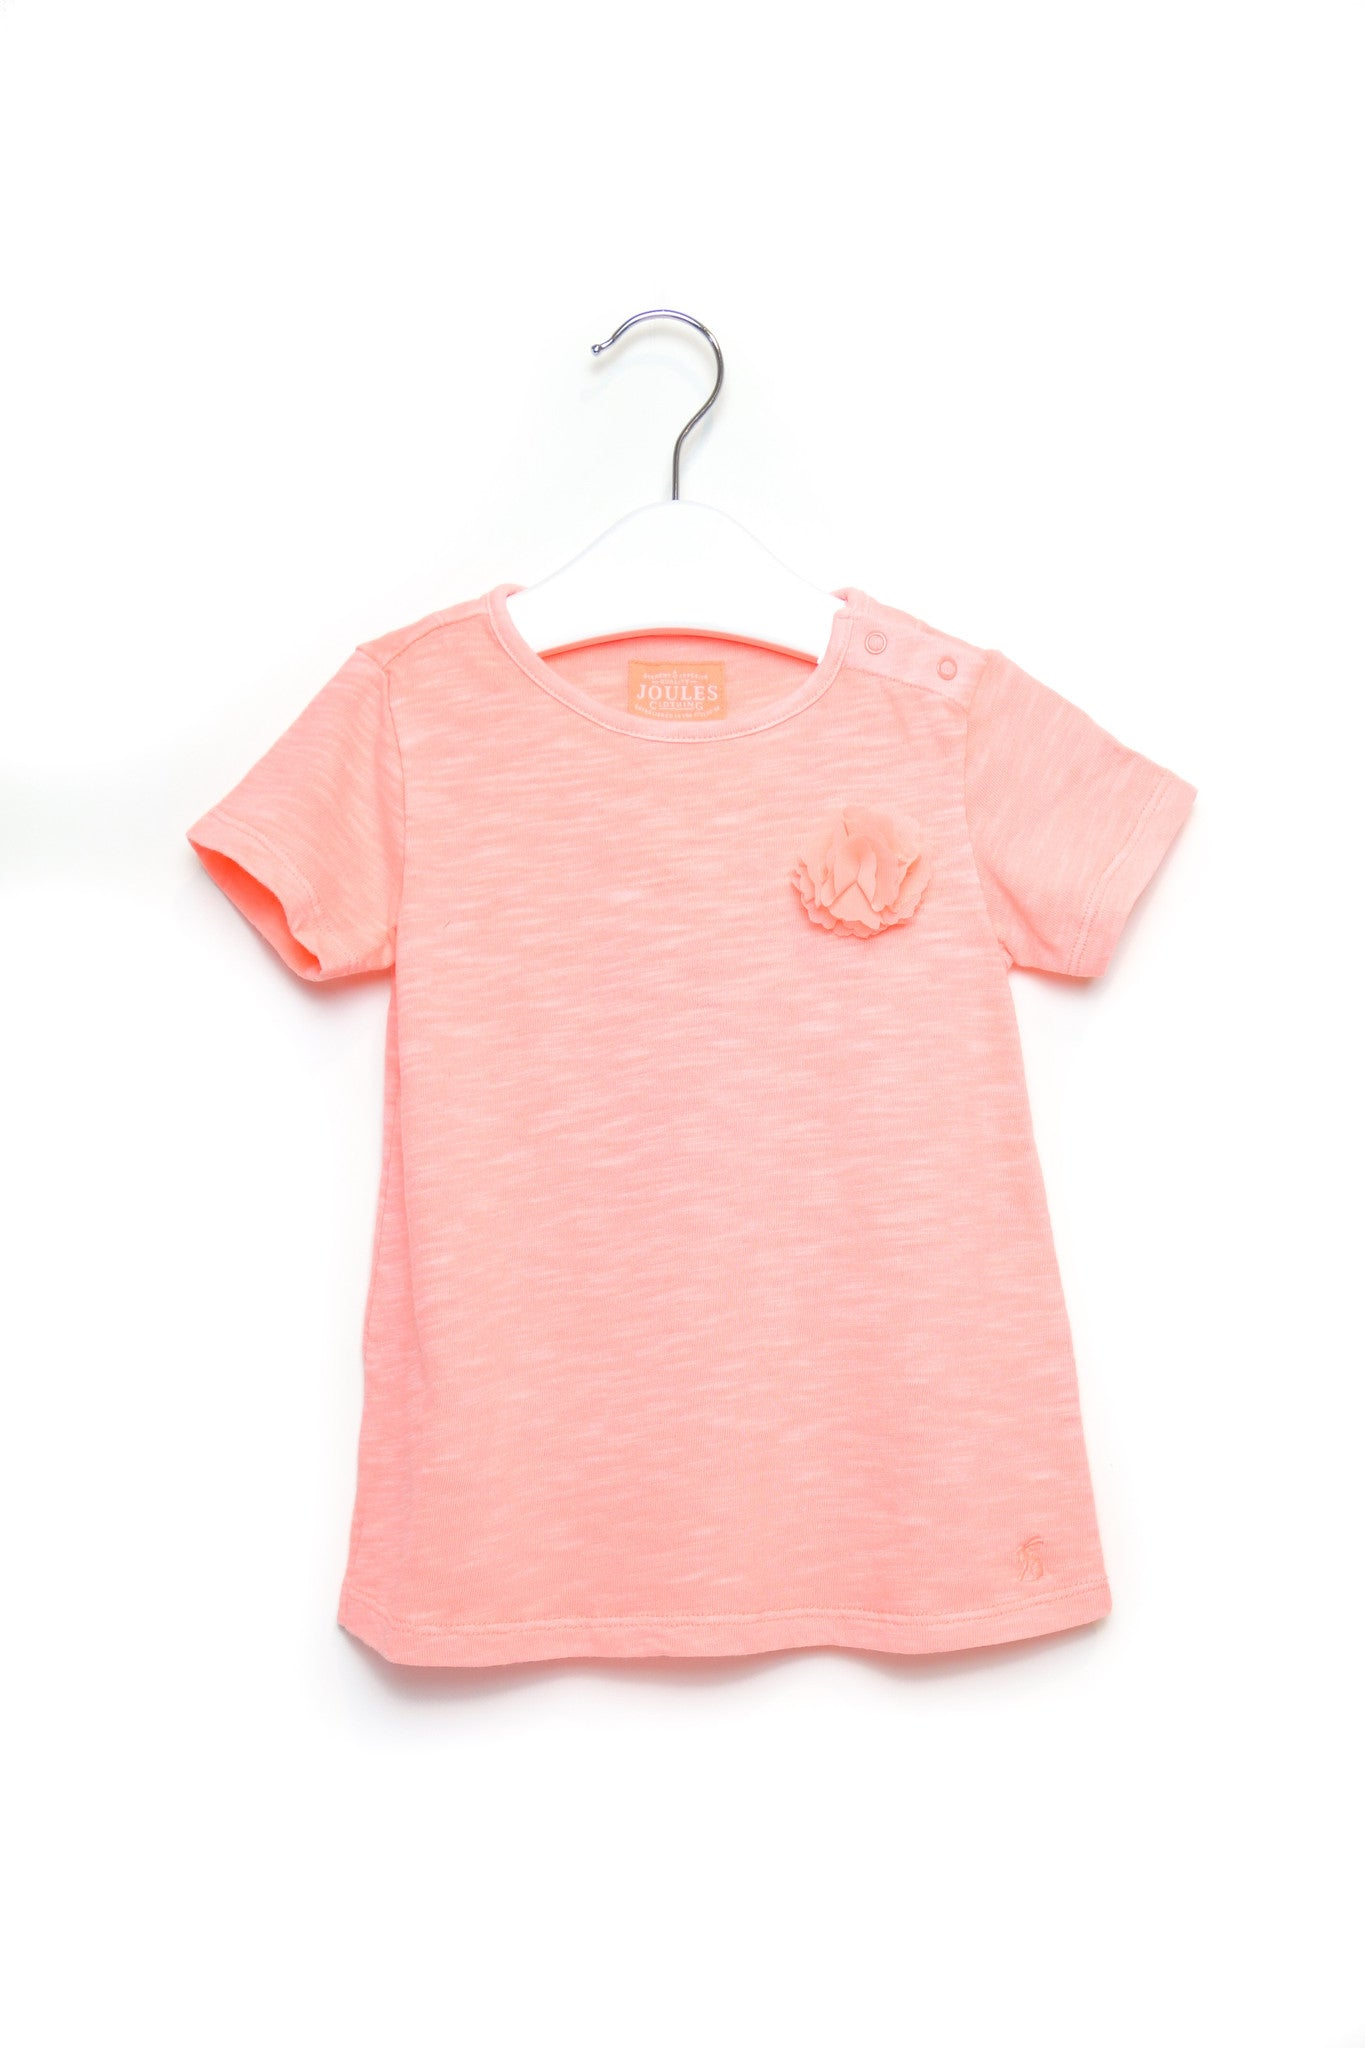 10001480 Joules Kids~T-Shirt 2-3T at Retykle